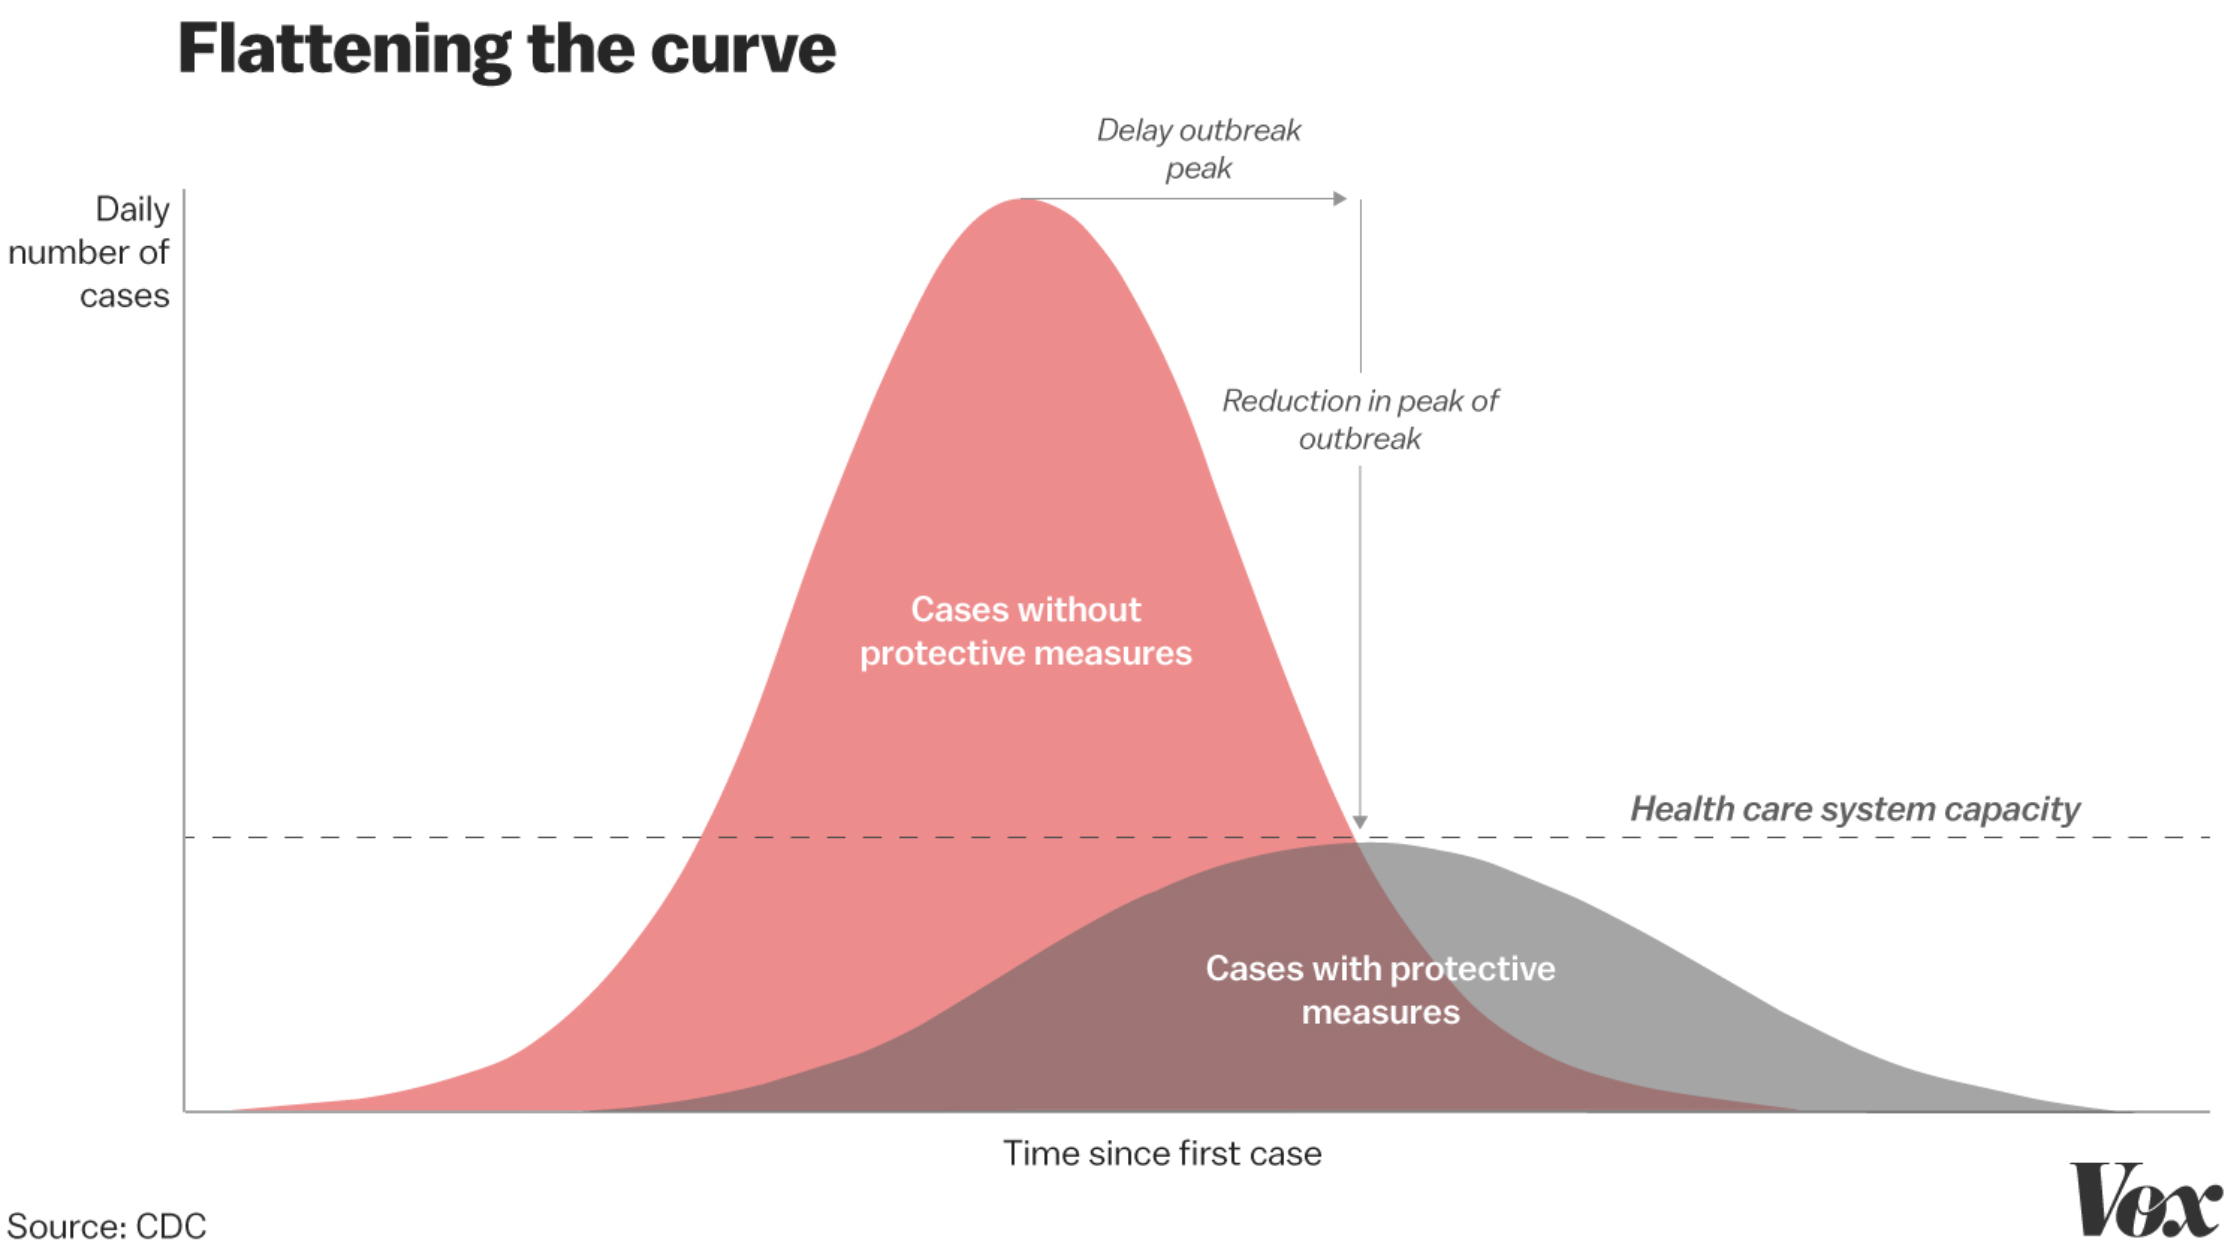 Flattening the curve of an epidemic means slowing the rate of spread to keep it within the capacity of the health care system.